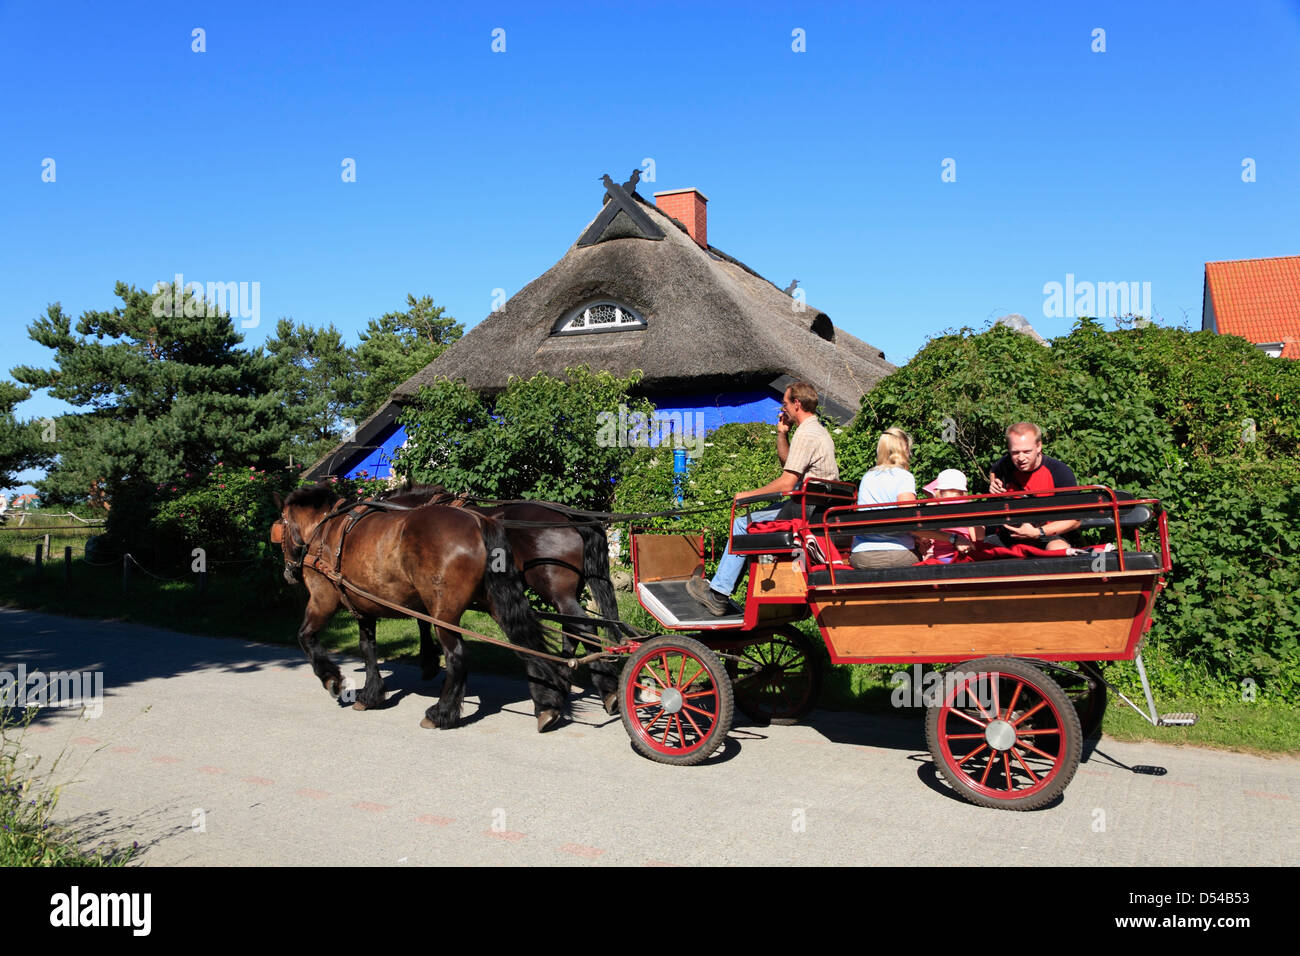 Hiddensee Island, Vitte, carriage in front of BLUE BARN, Blaue Scheune, Mecklenburg Western Pomerania, Germany - Stock Image